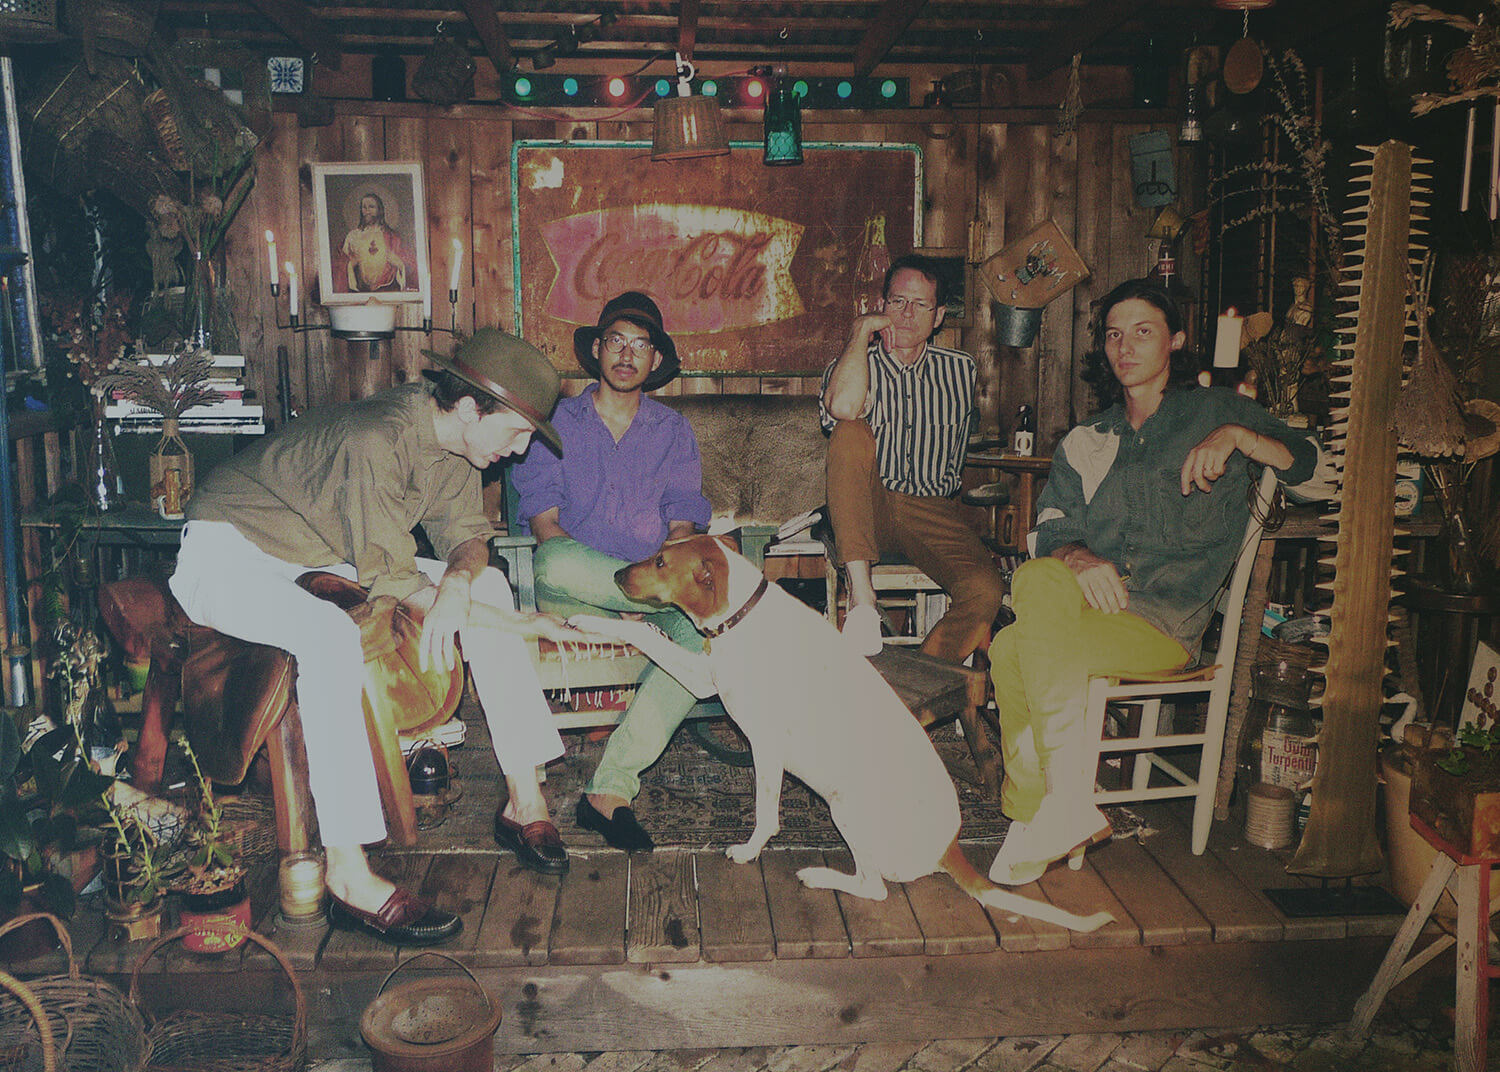 Deerhunter's Fading Frontier is out now. (Courtesy of the artist)